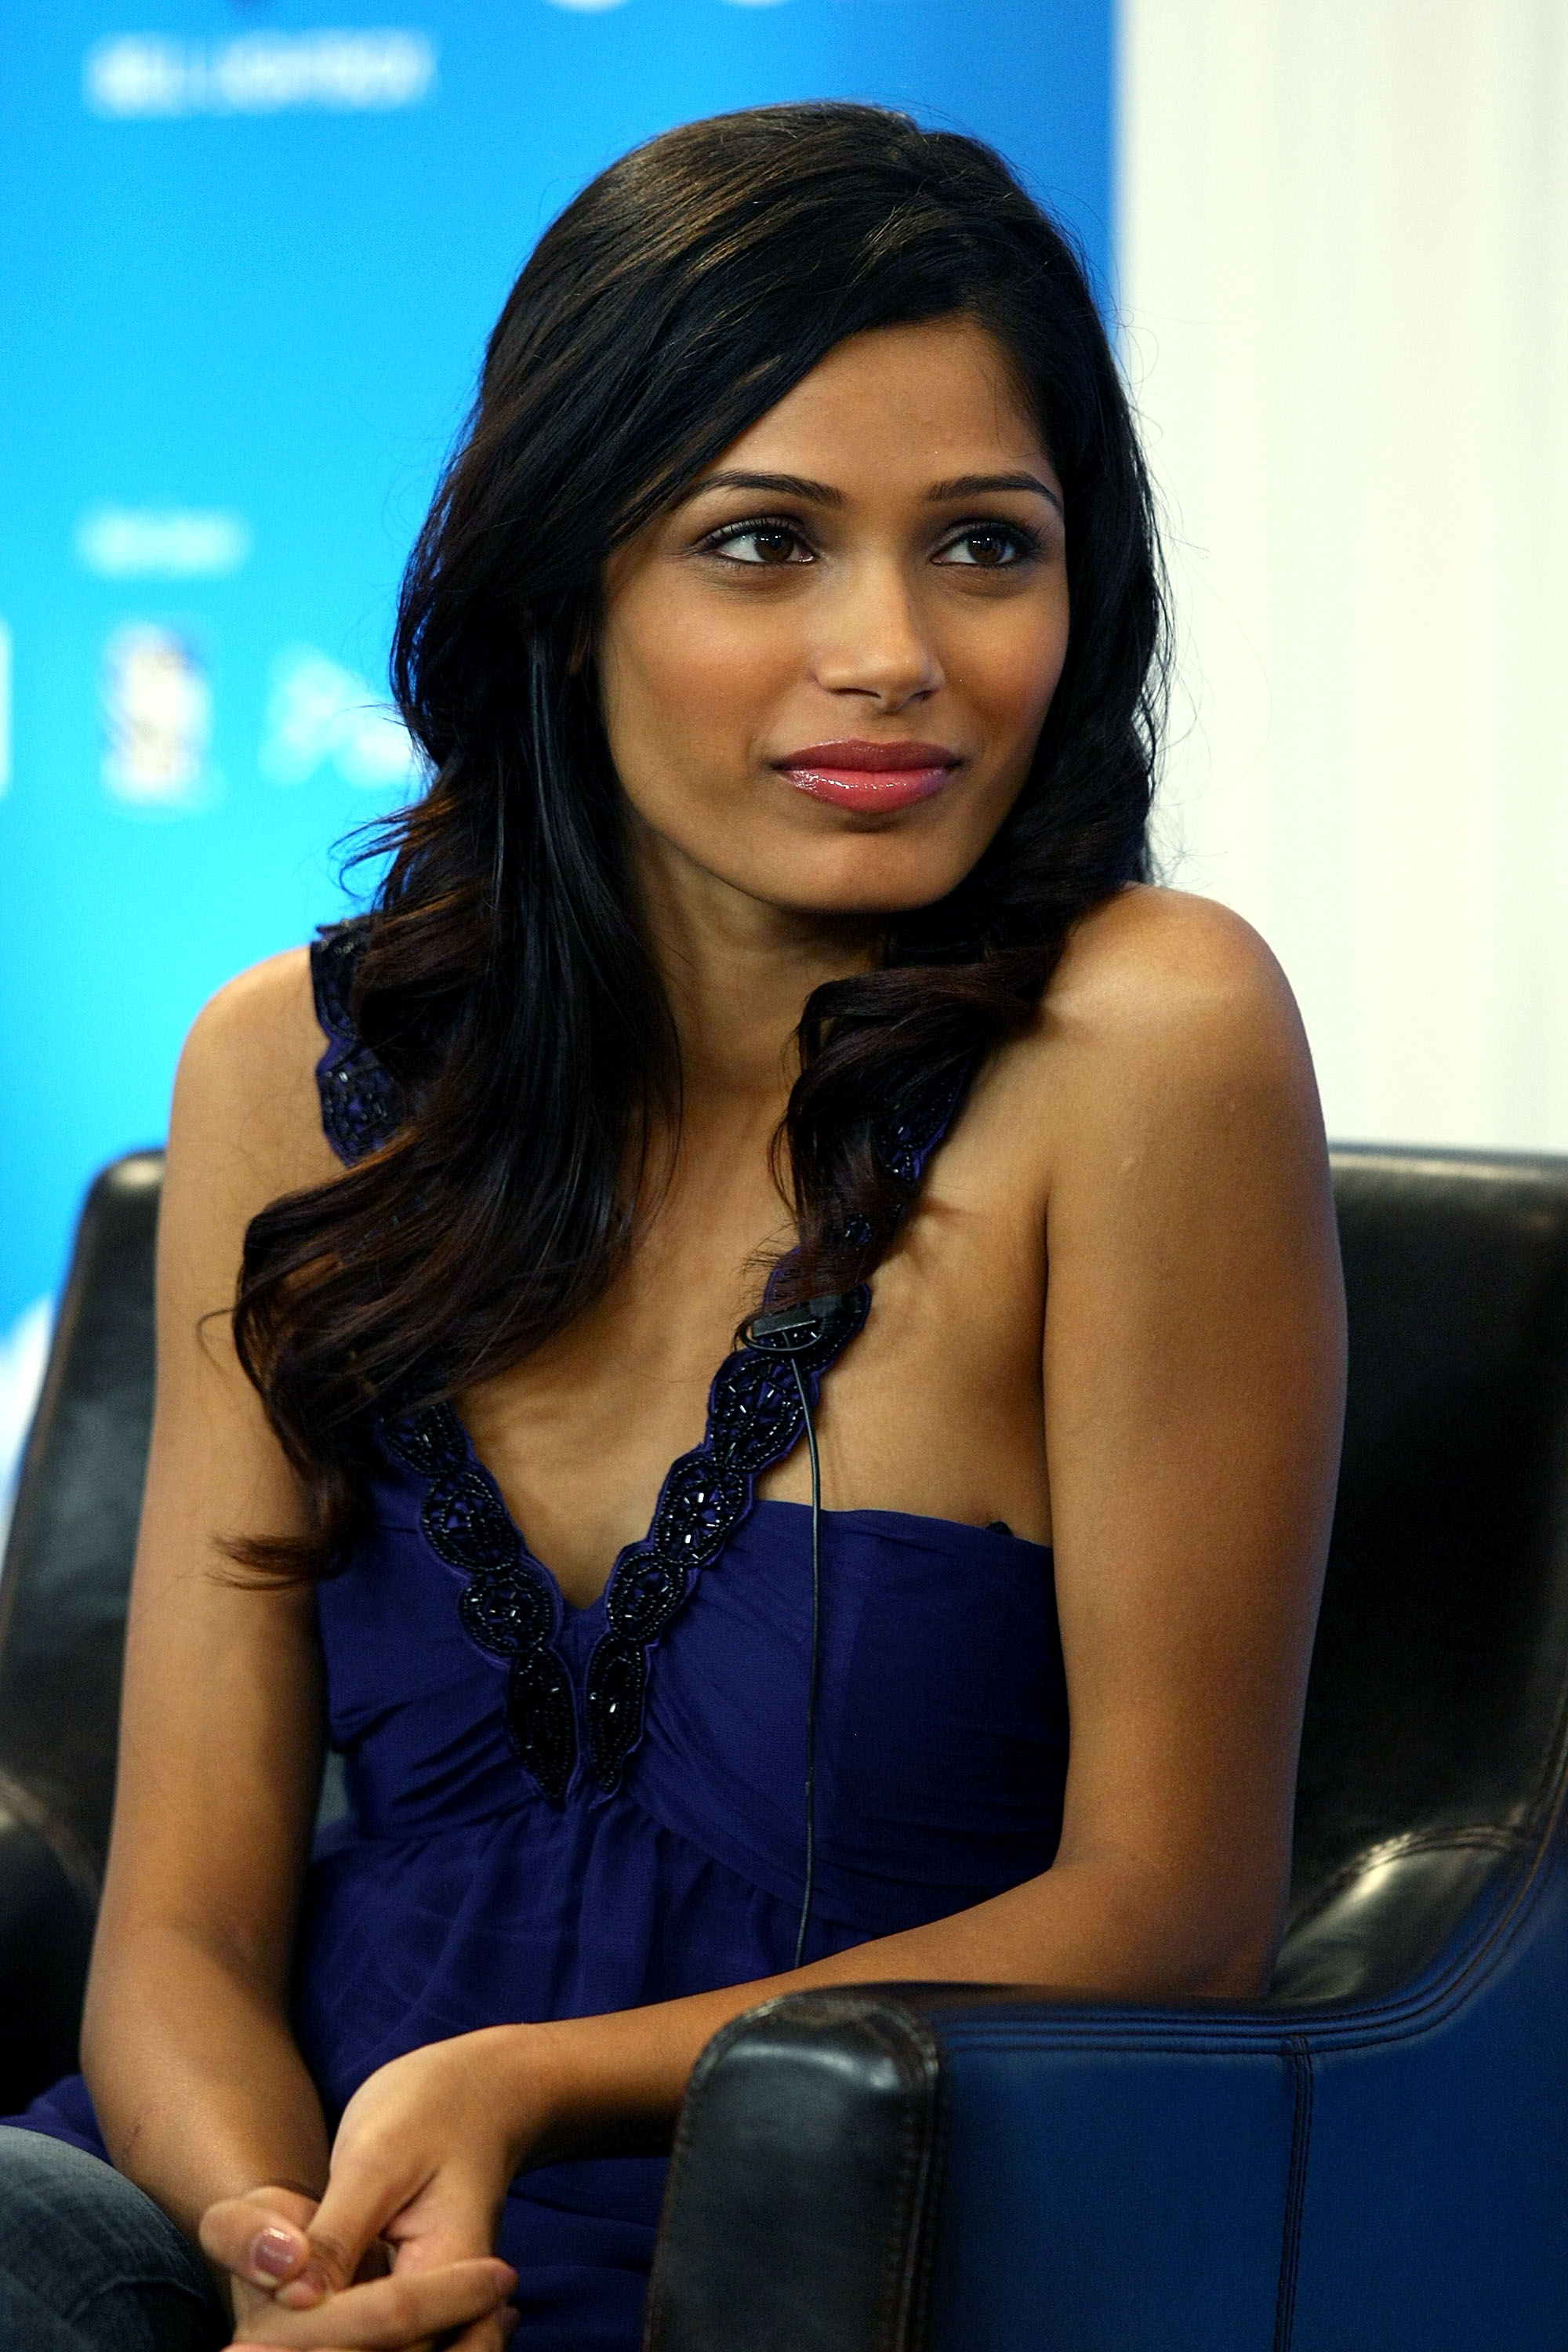 celebrity photos freida pinto freida pinto photo 7 1 vote